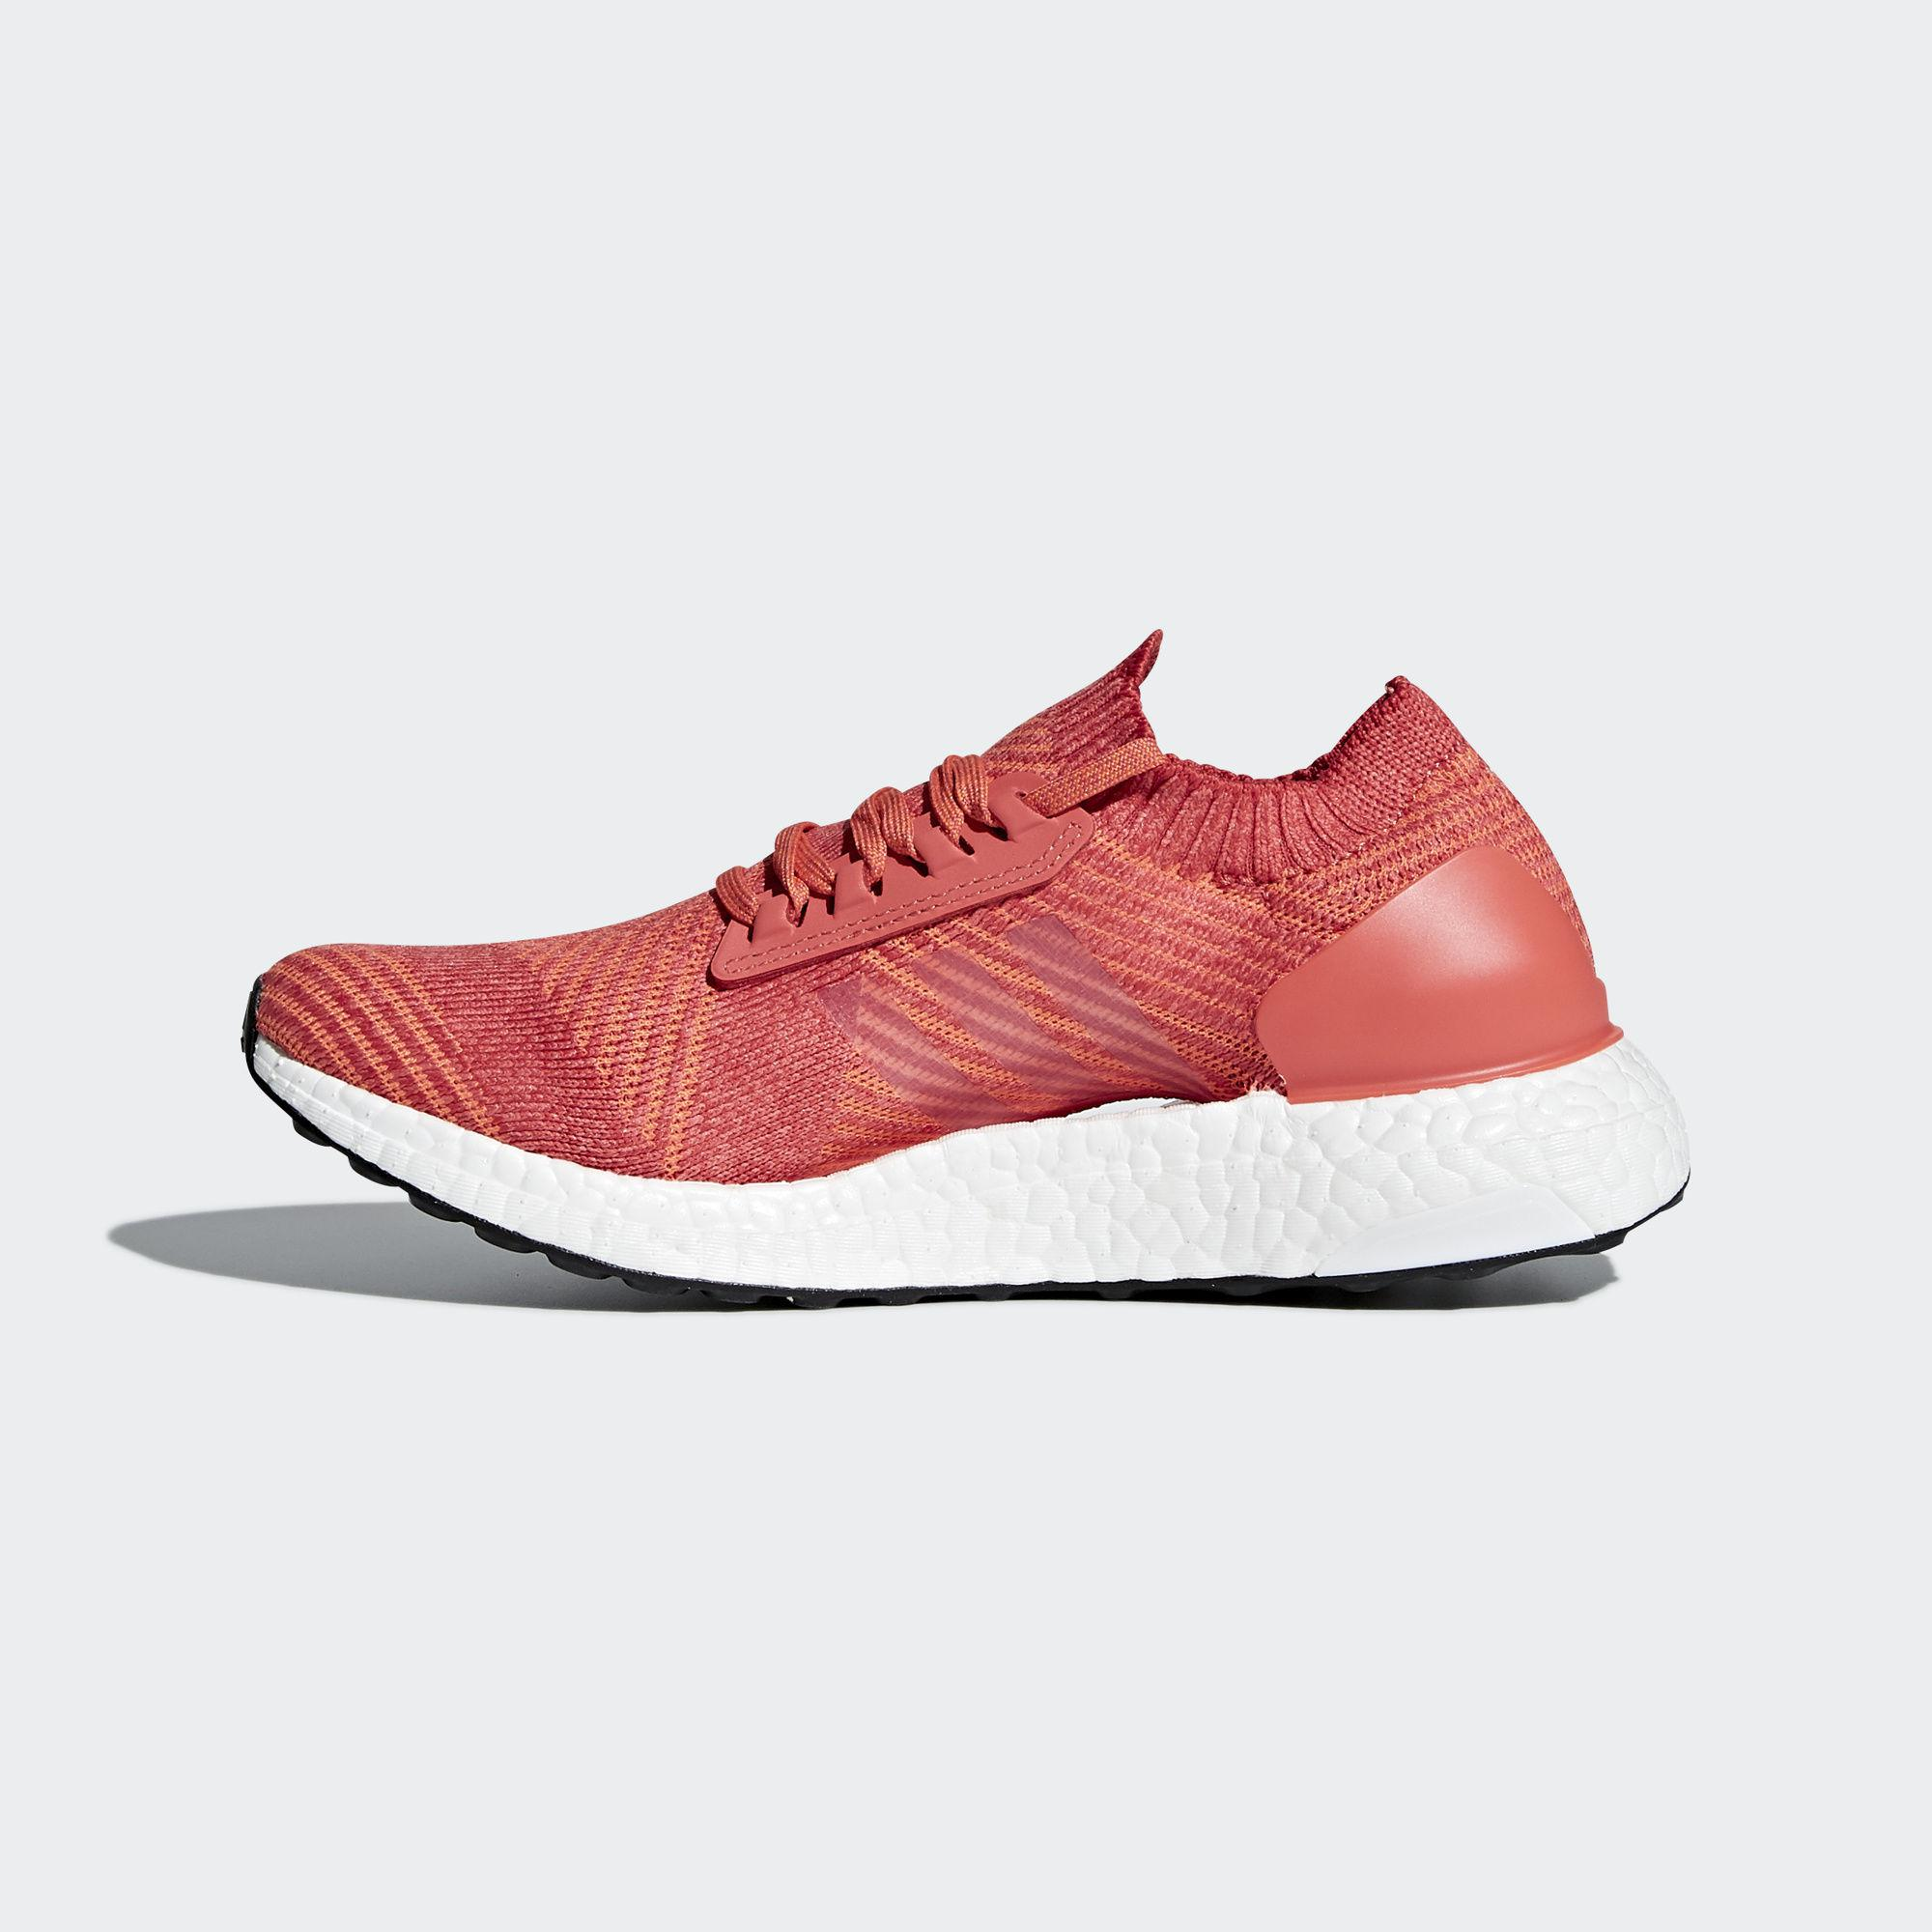 finest selection bc94c fdfe1 Adidas Womens Ultra Boost X Running Shoes - Trace Scarlet